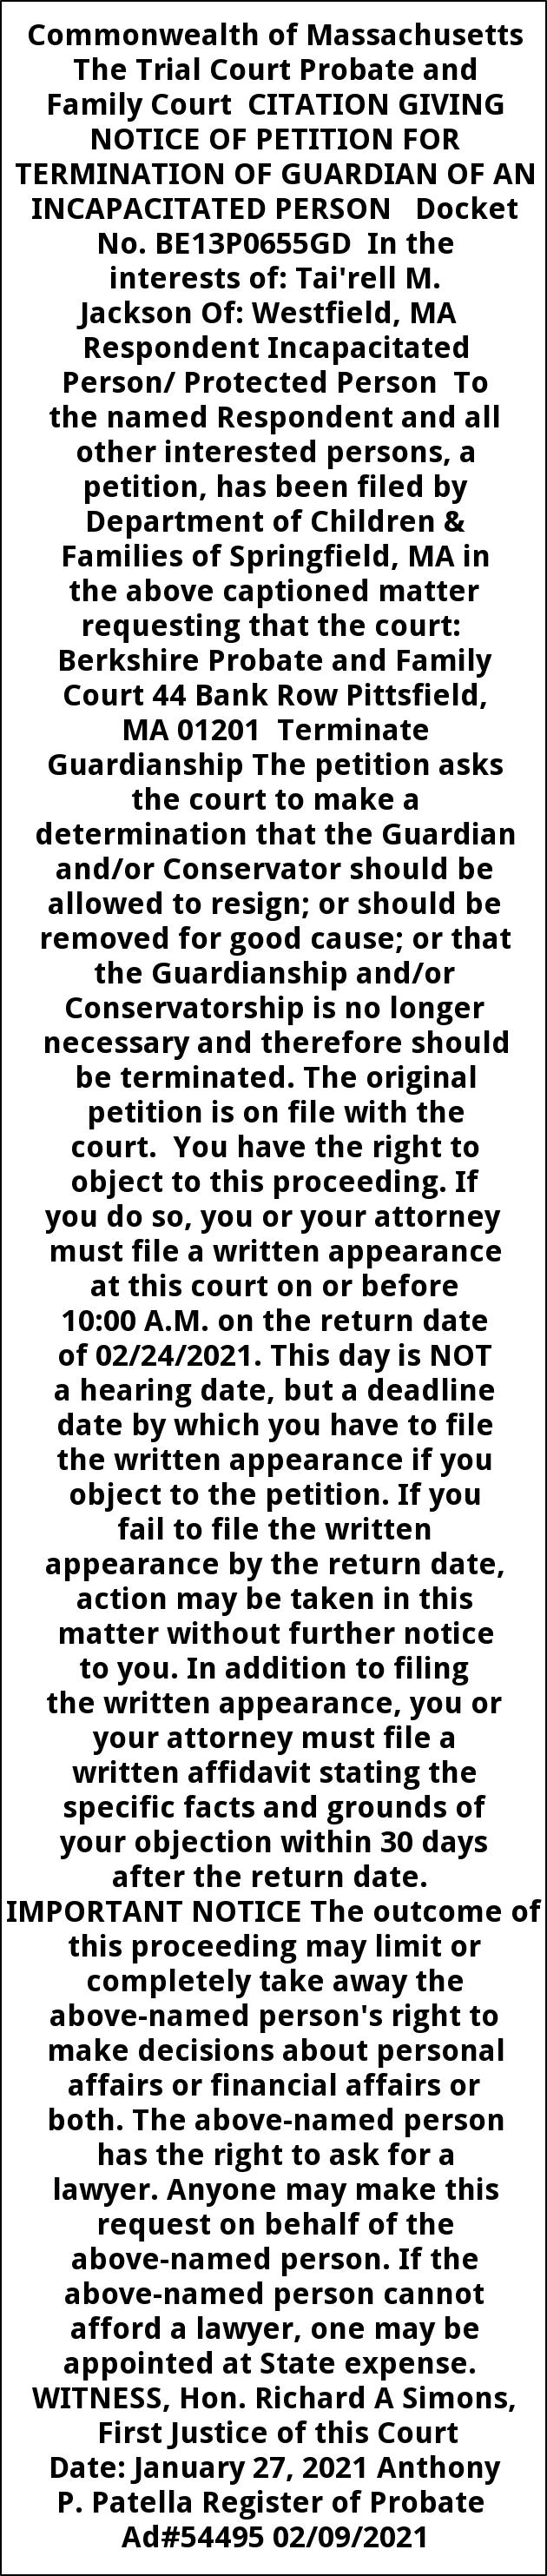 Notice Of Petition For Termination Of Guardian